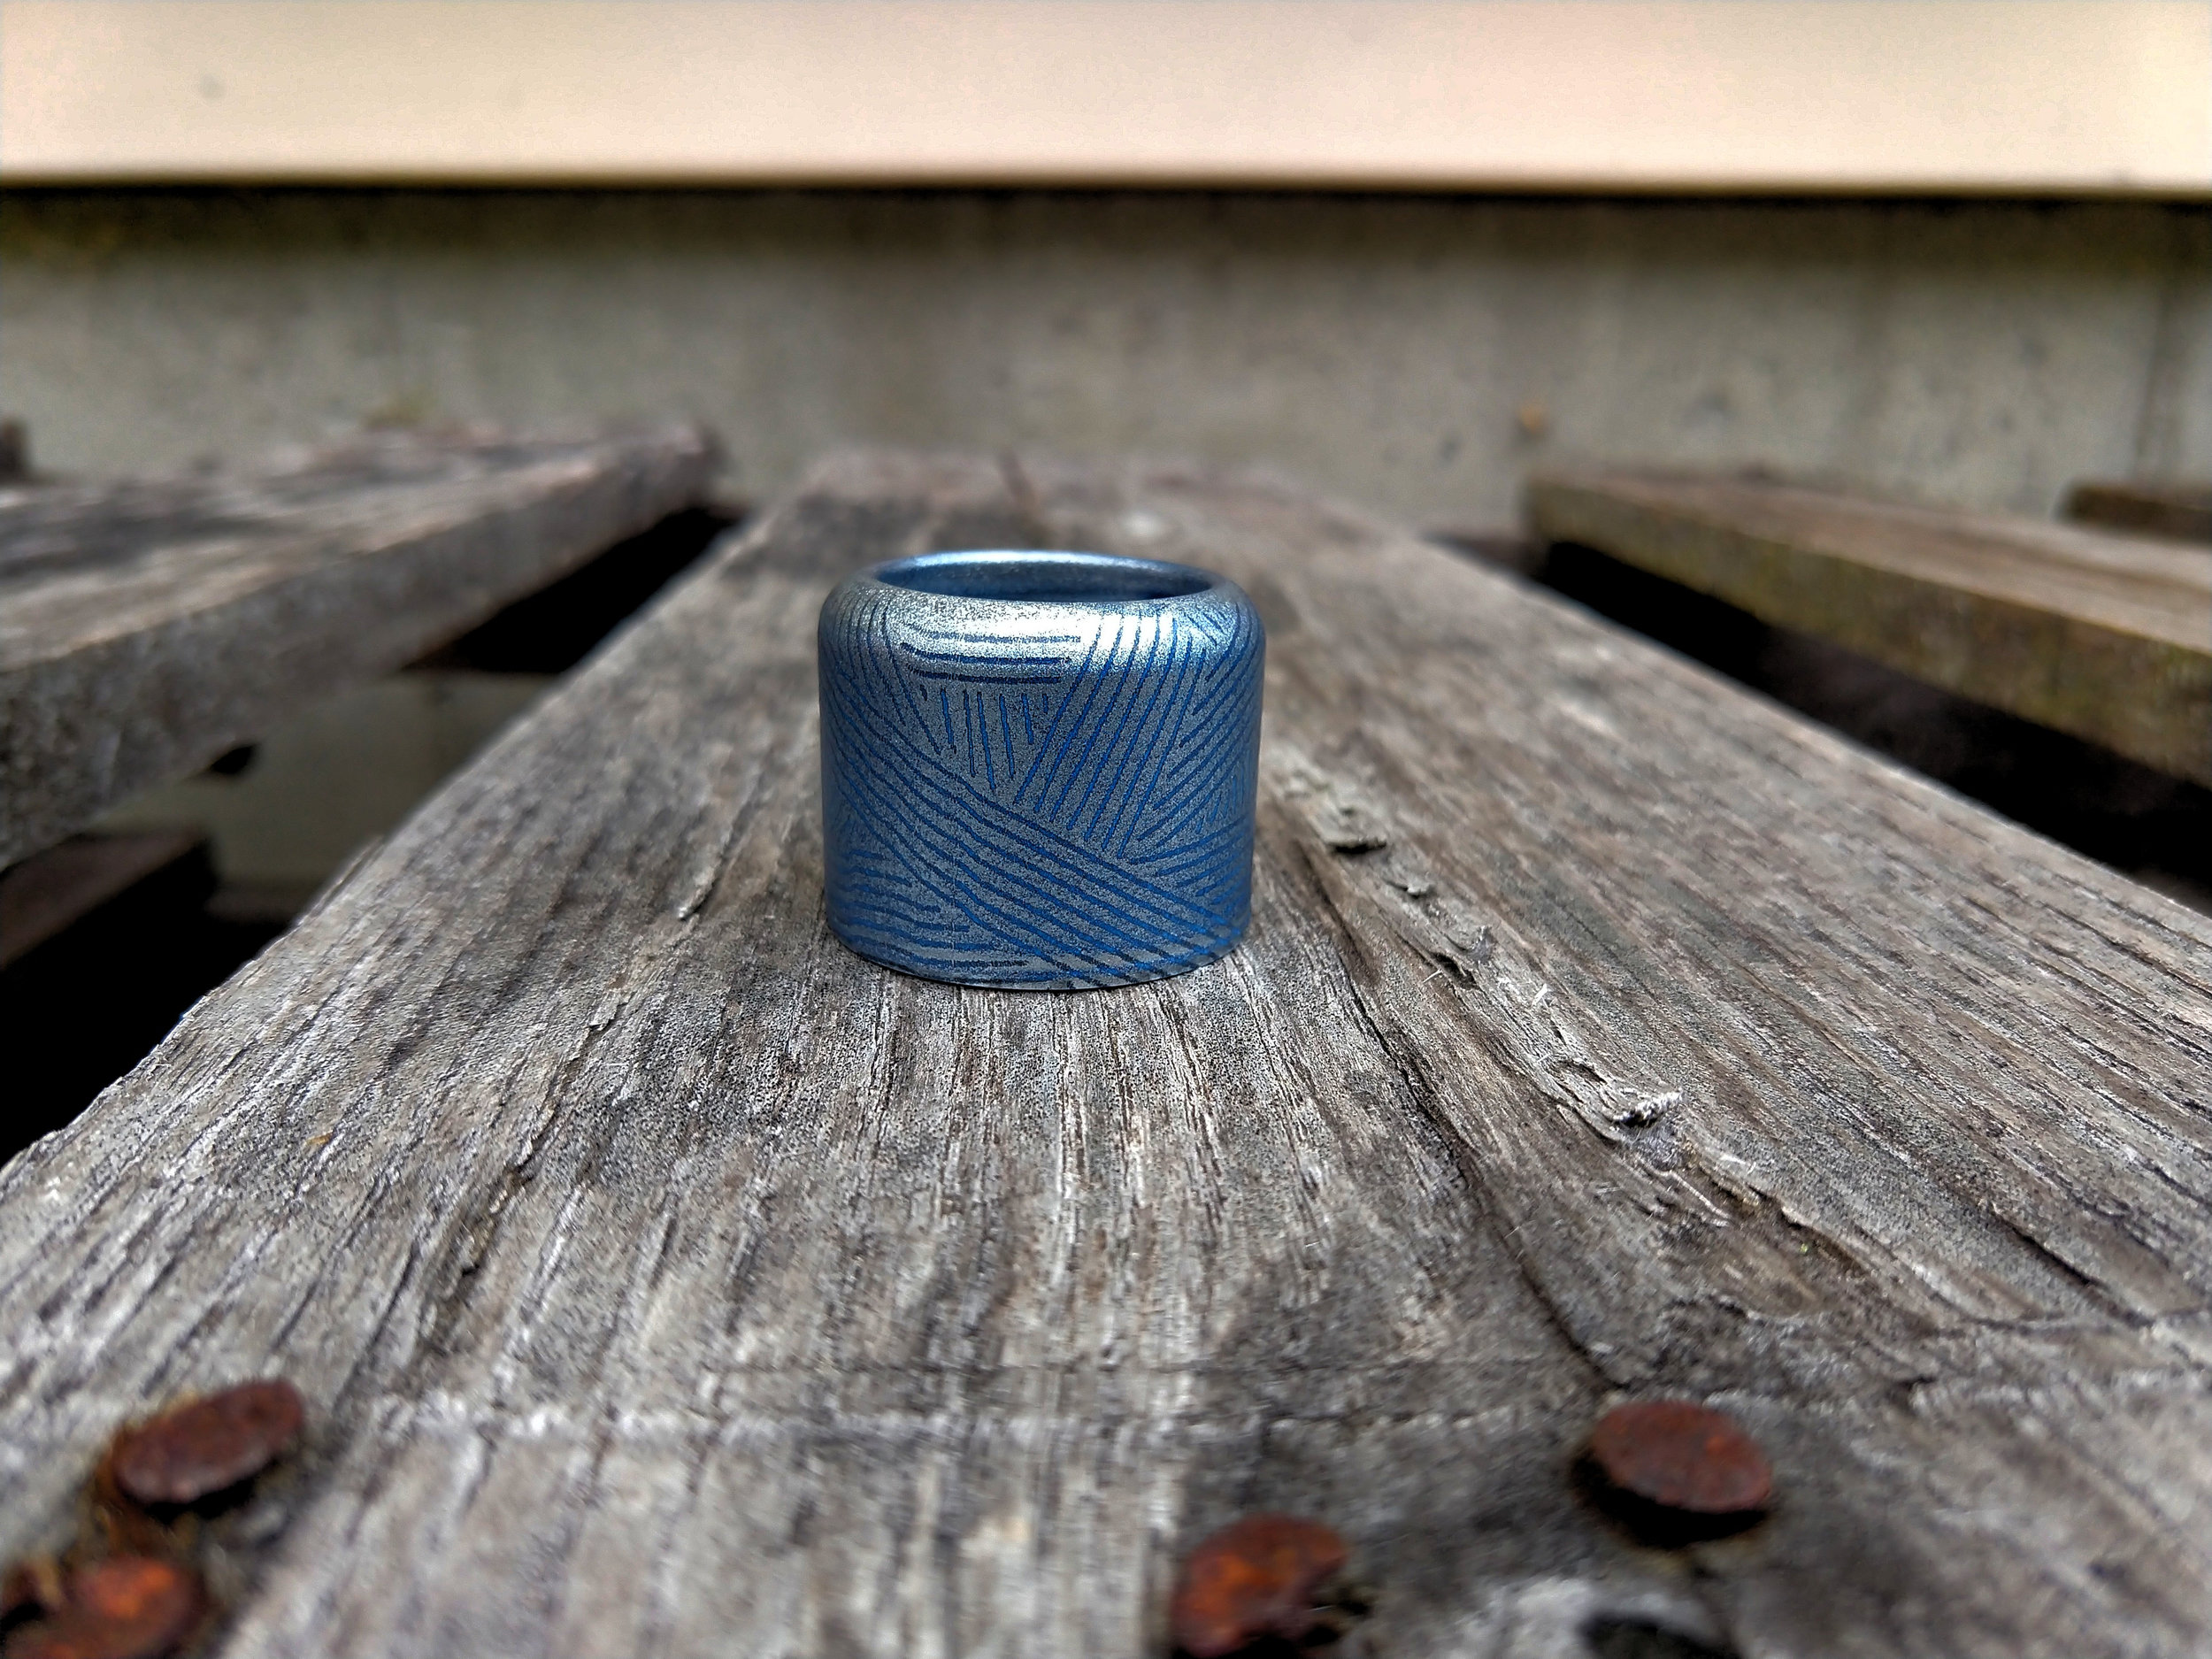 Manchu ring silver over noctural blue, weave pattern.